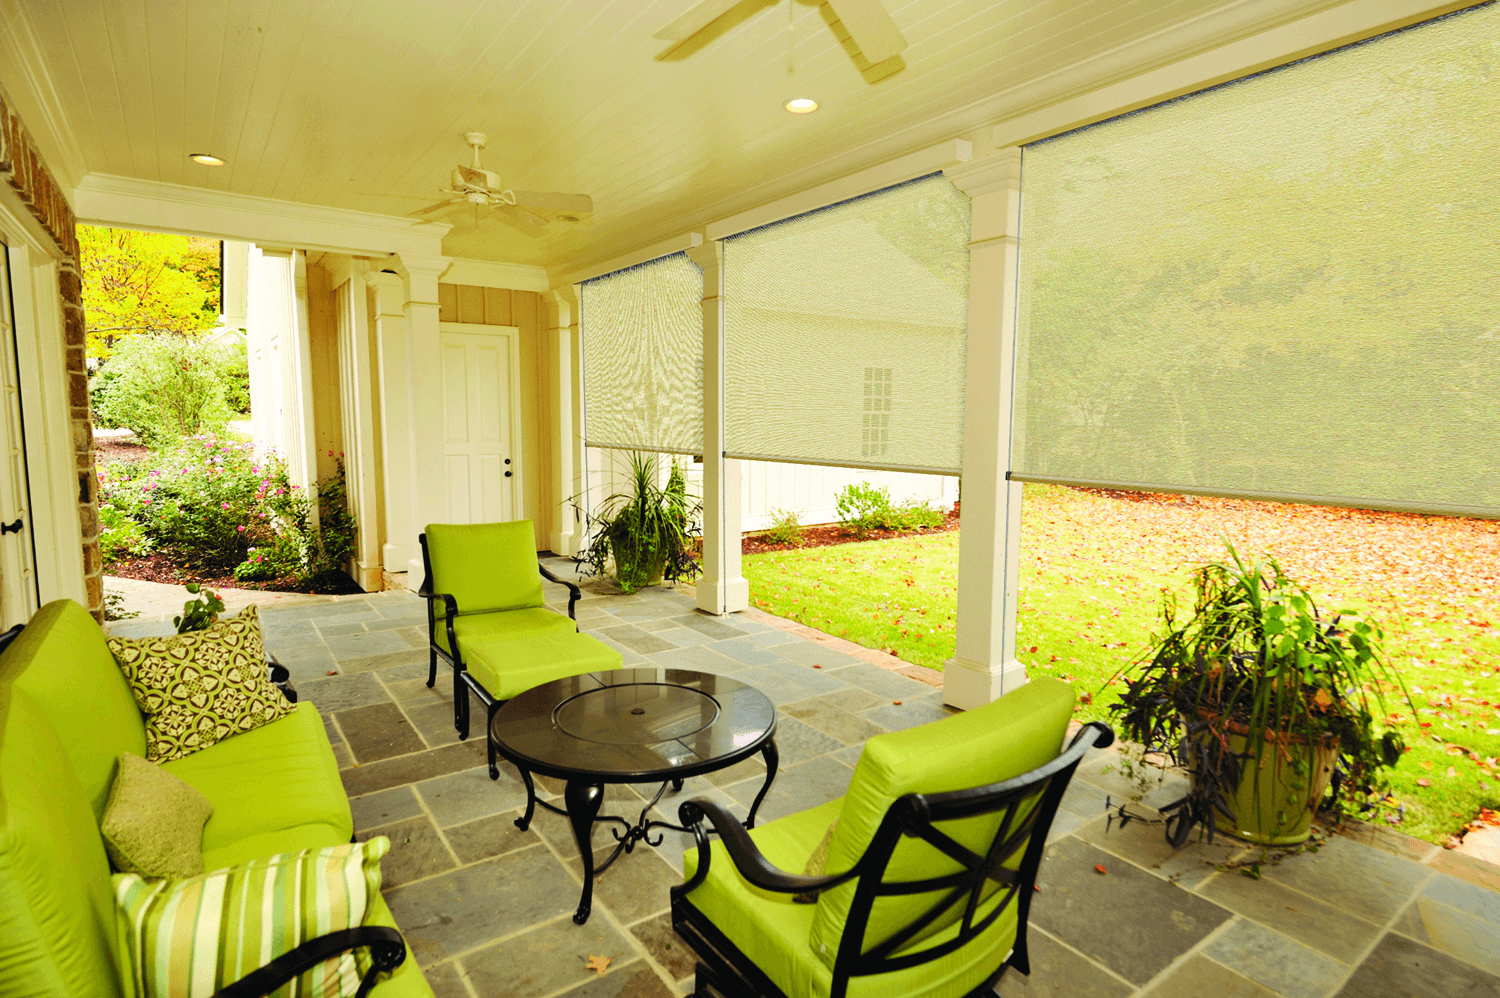 Exterior porch shades and blinds